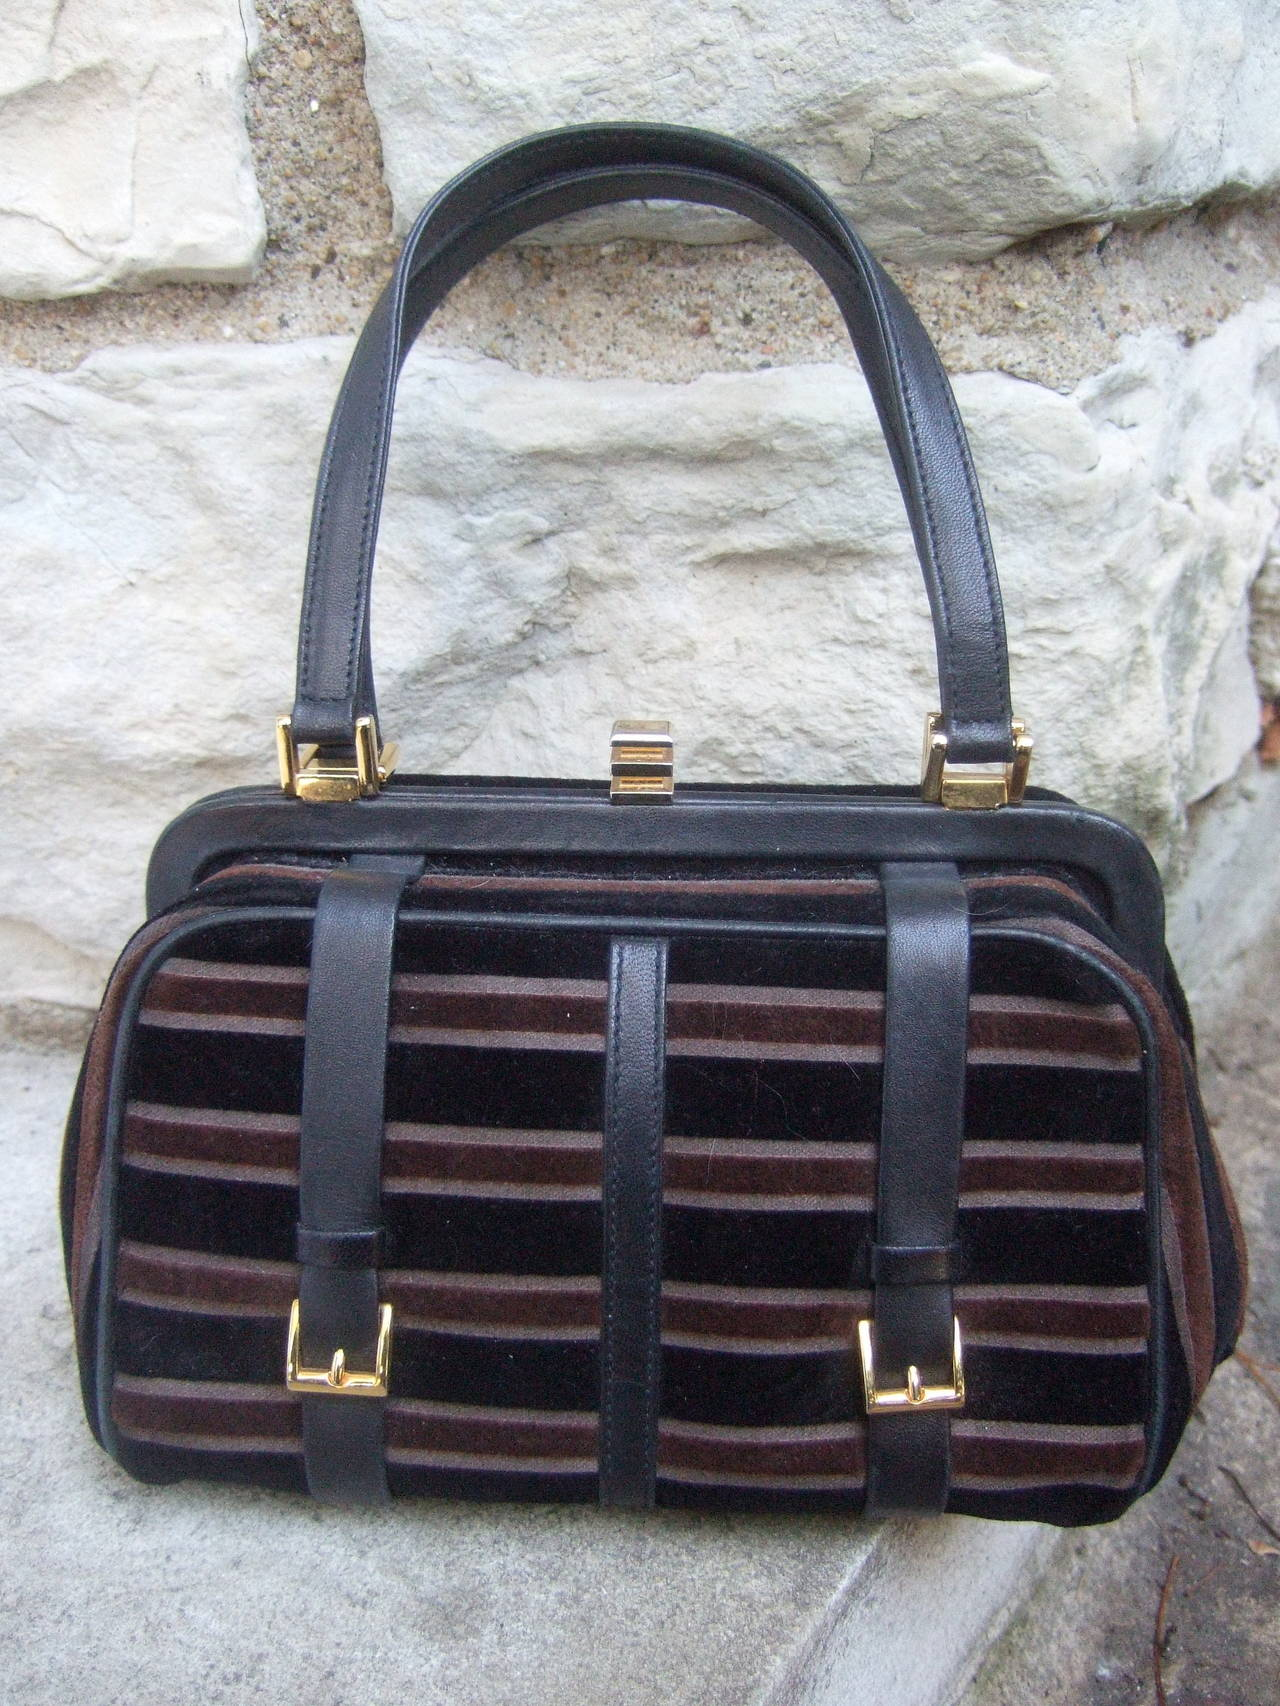 Saks Fifth Avenue Striped Velvet Handbag Made in Italy 3